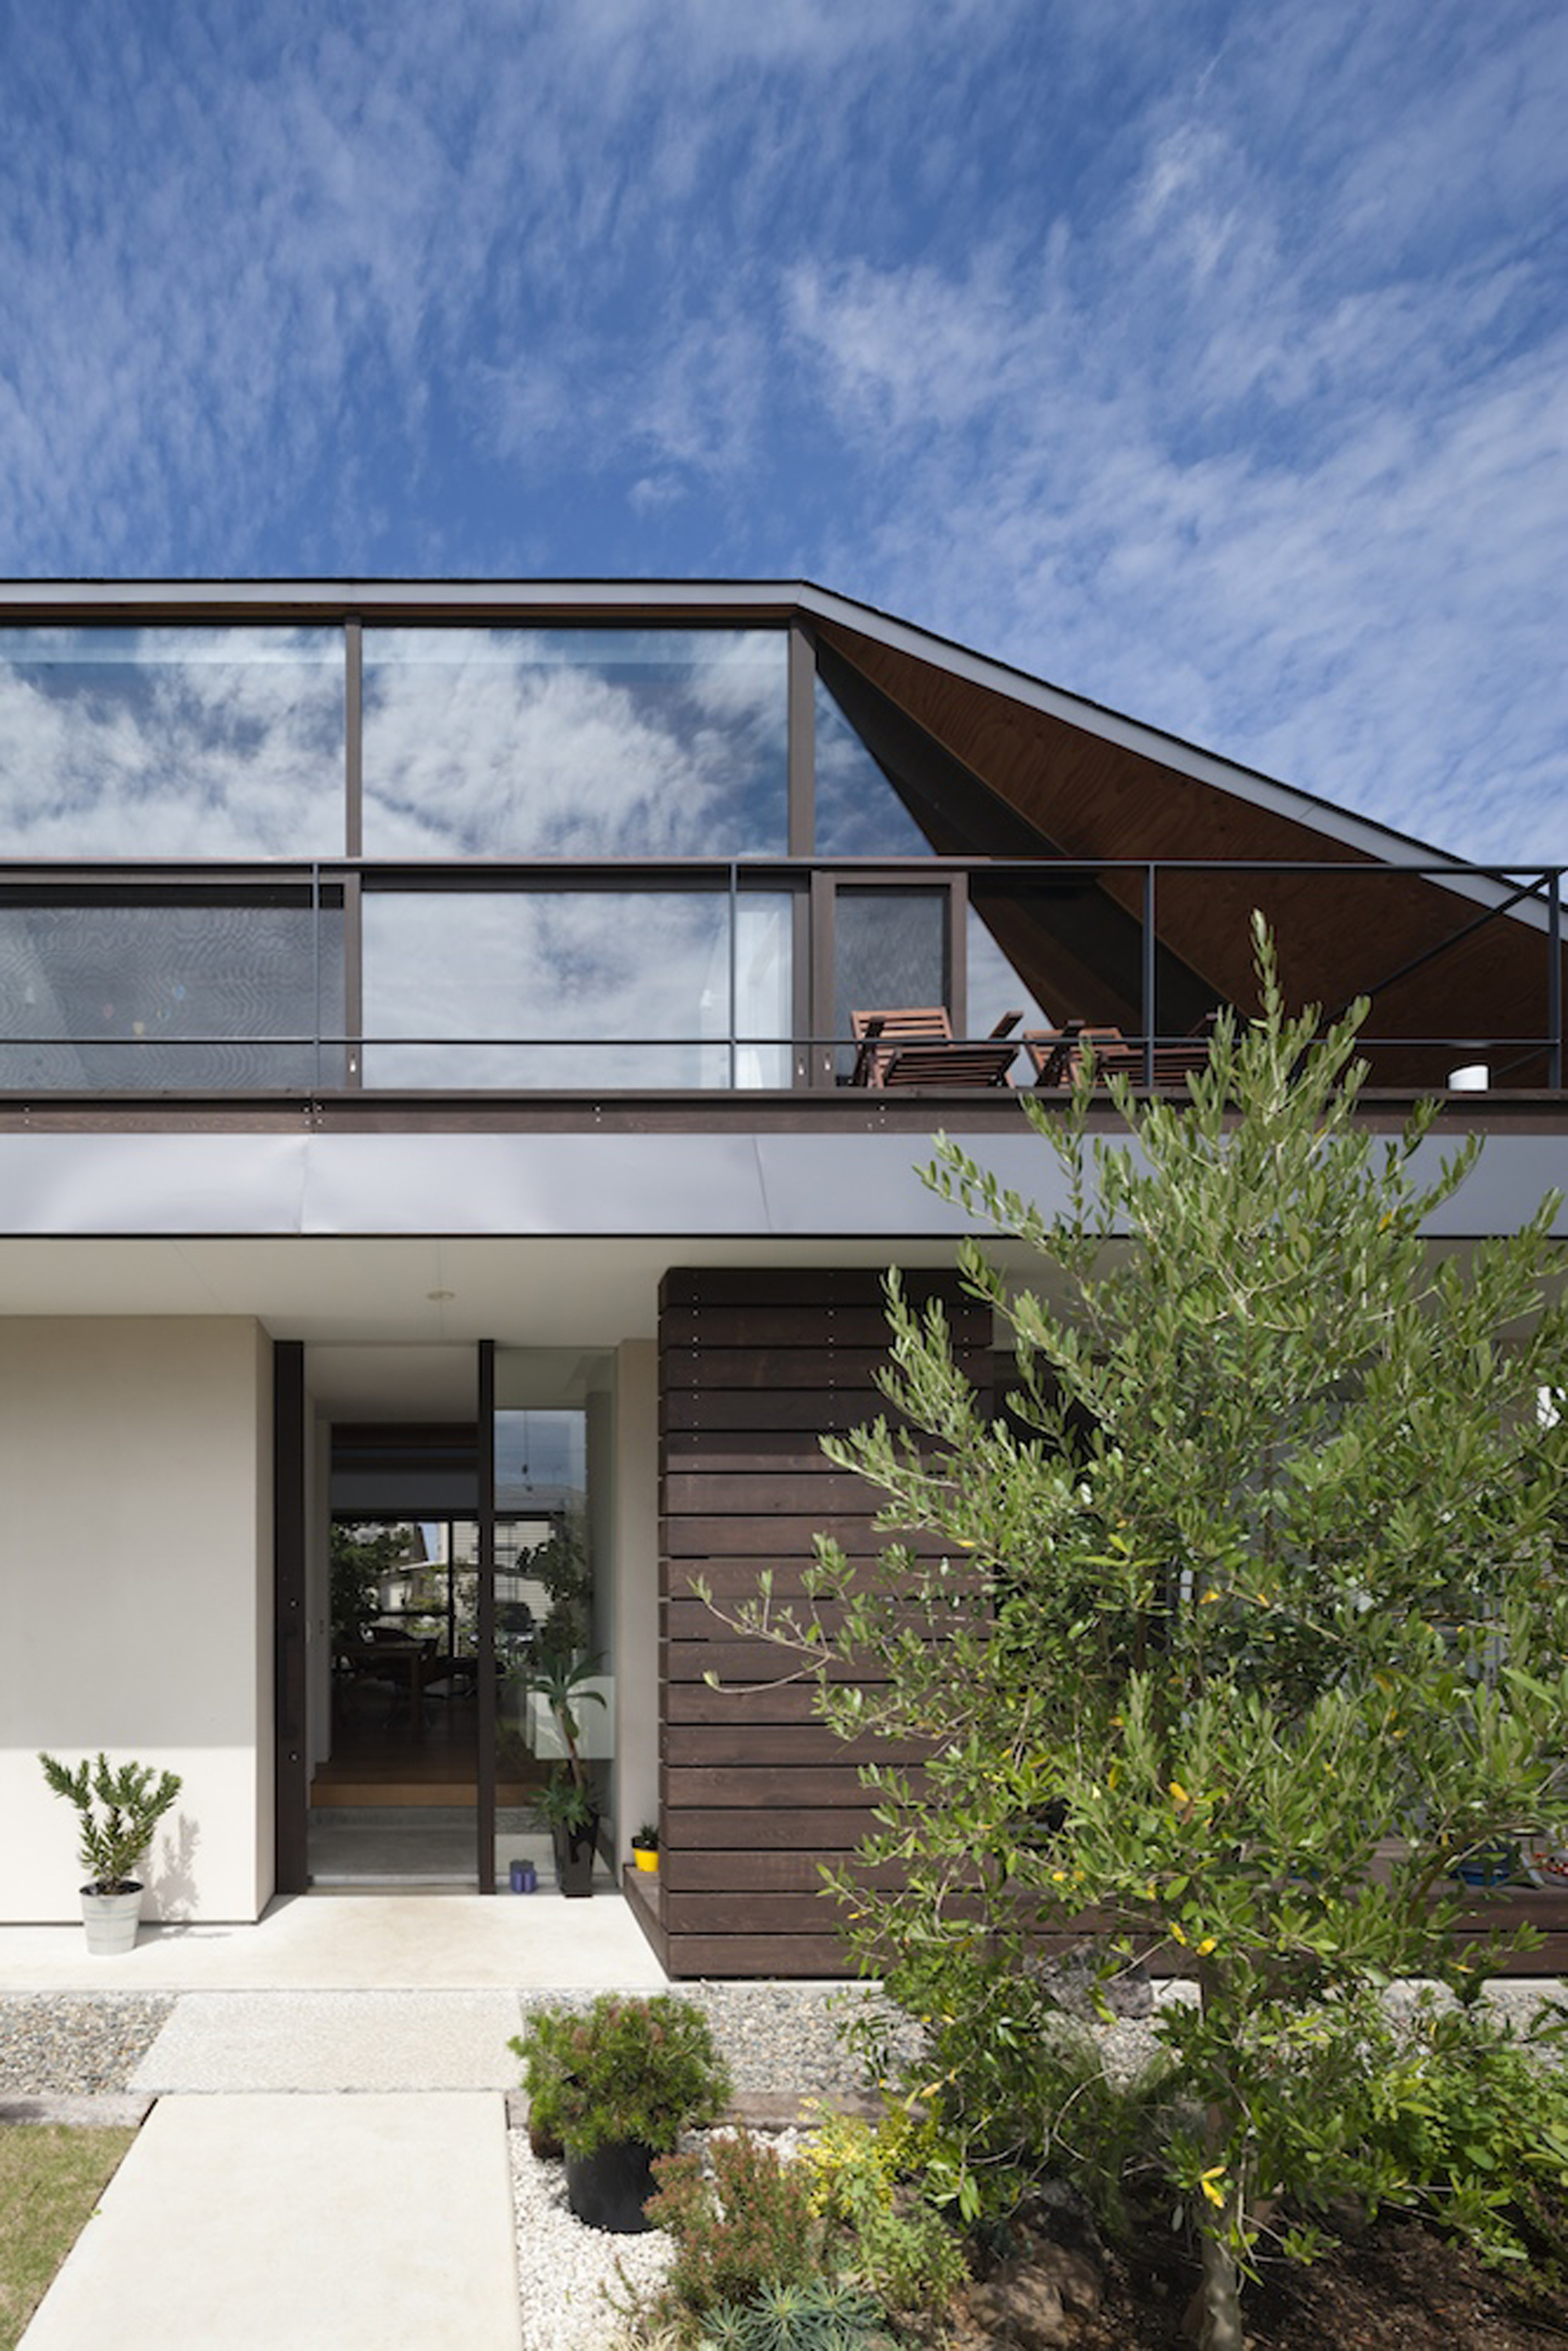 52eb1e8ce8e44e29ae000099_house-with-a-large-hipped-roof-naoi-architecture-design-office_housewithlhr_13